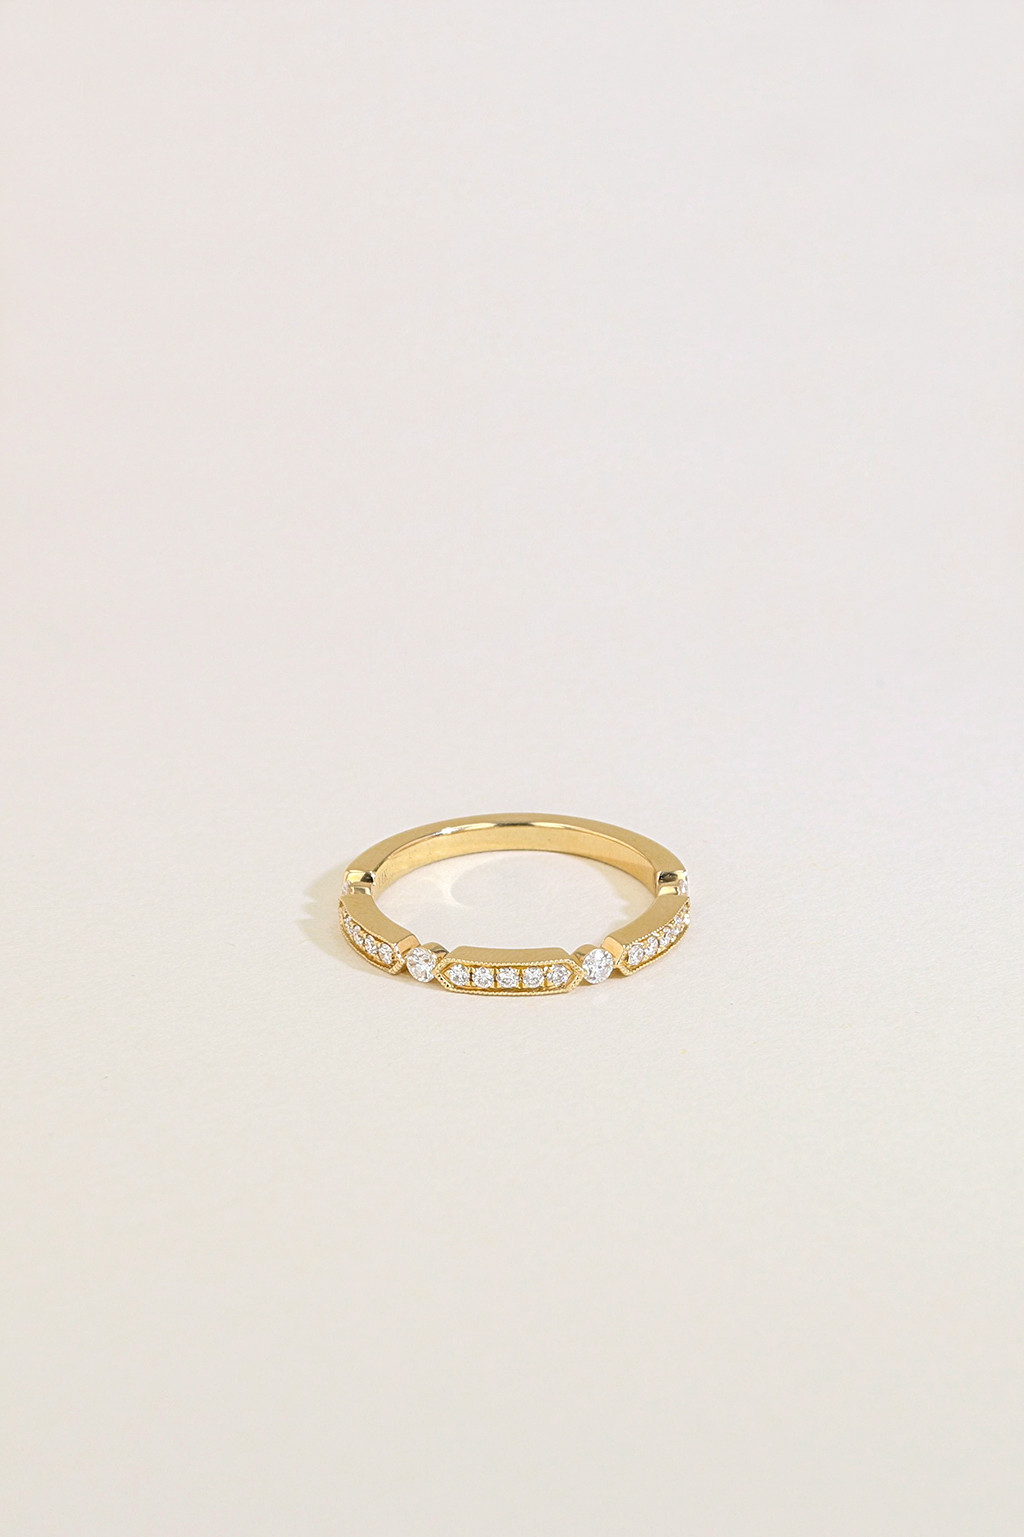 The Modern Diamond Wedding Ring front view